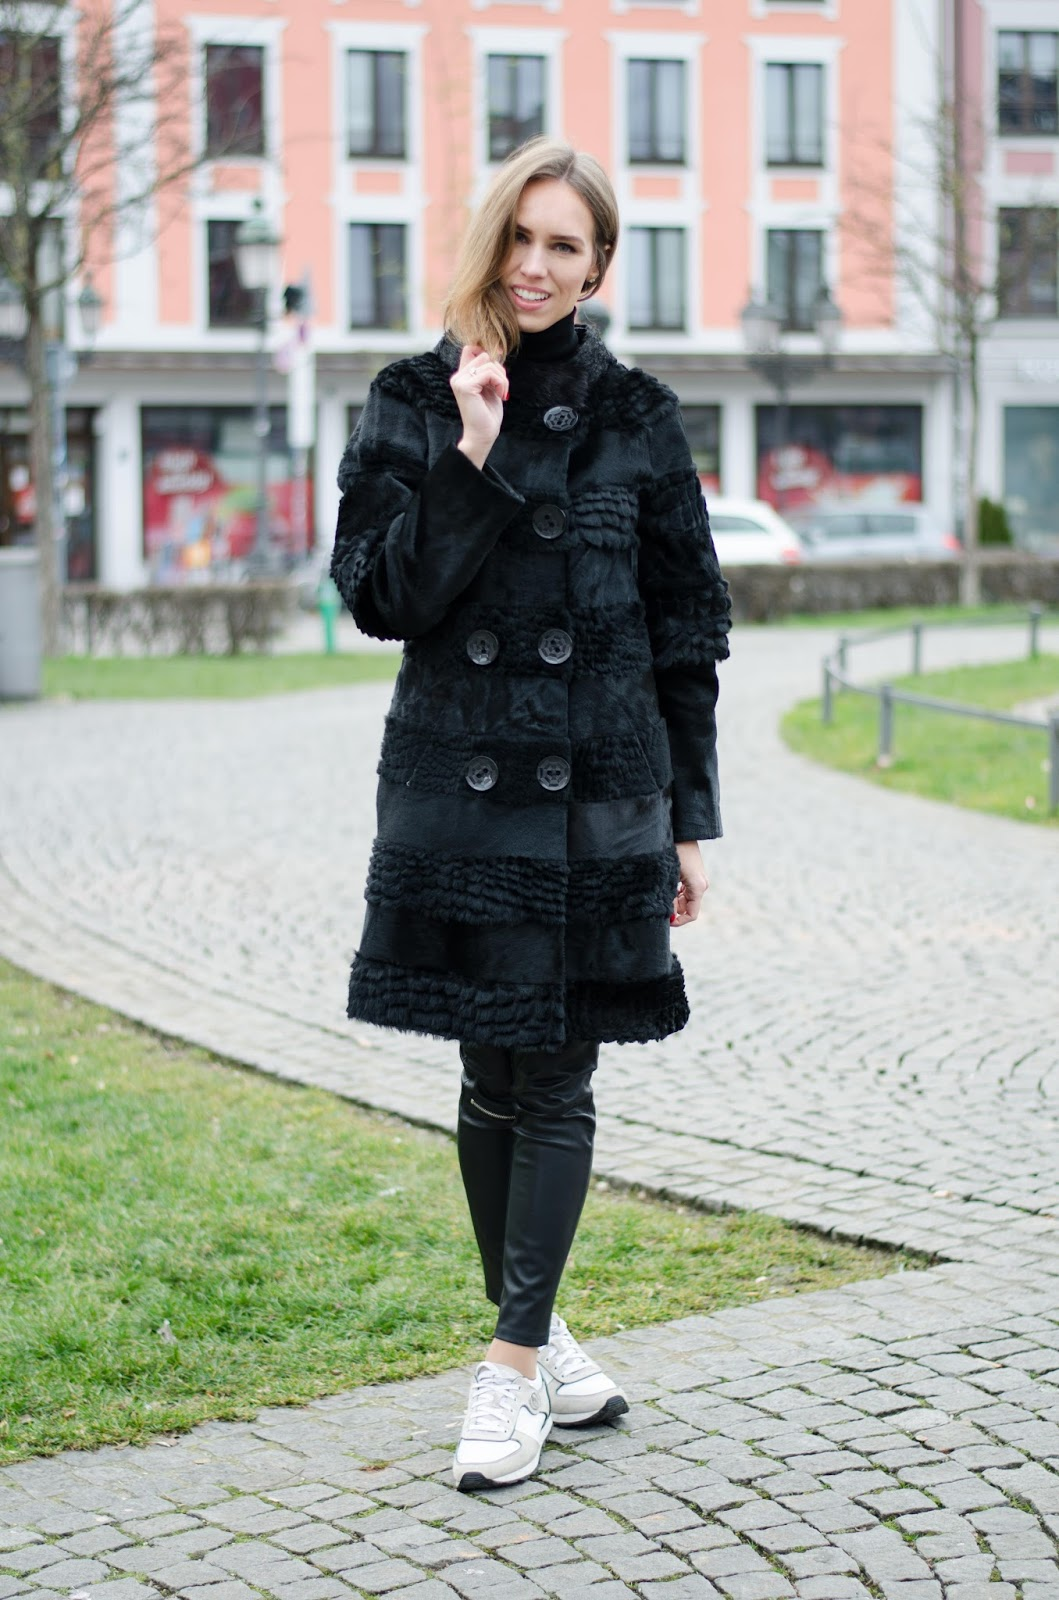 kristjaana mere textured black fur coat white sneakers casual minimal winter outfit